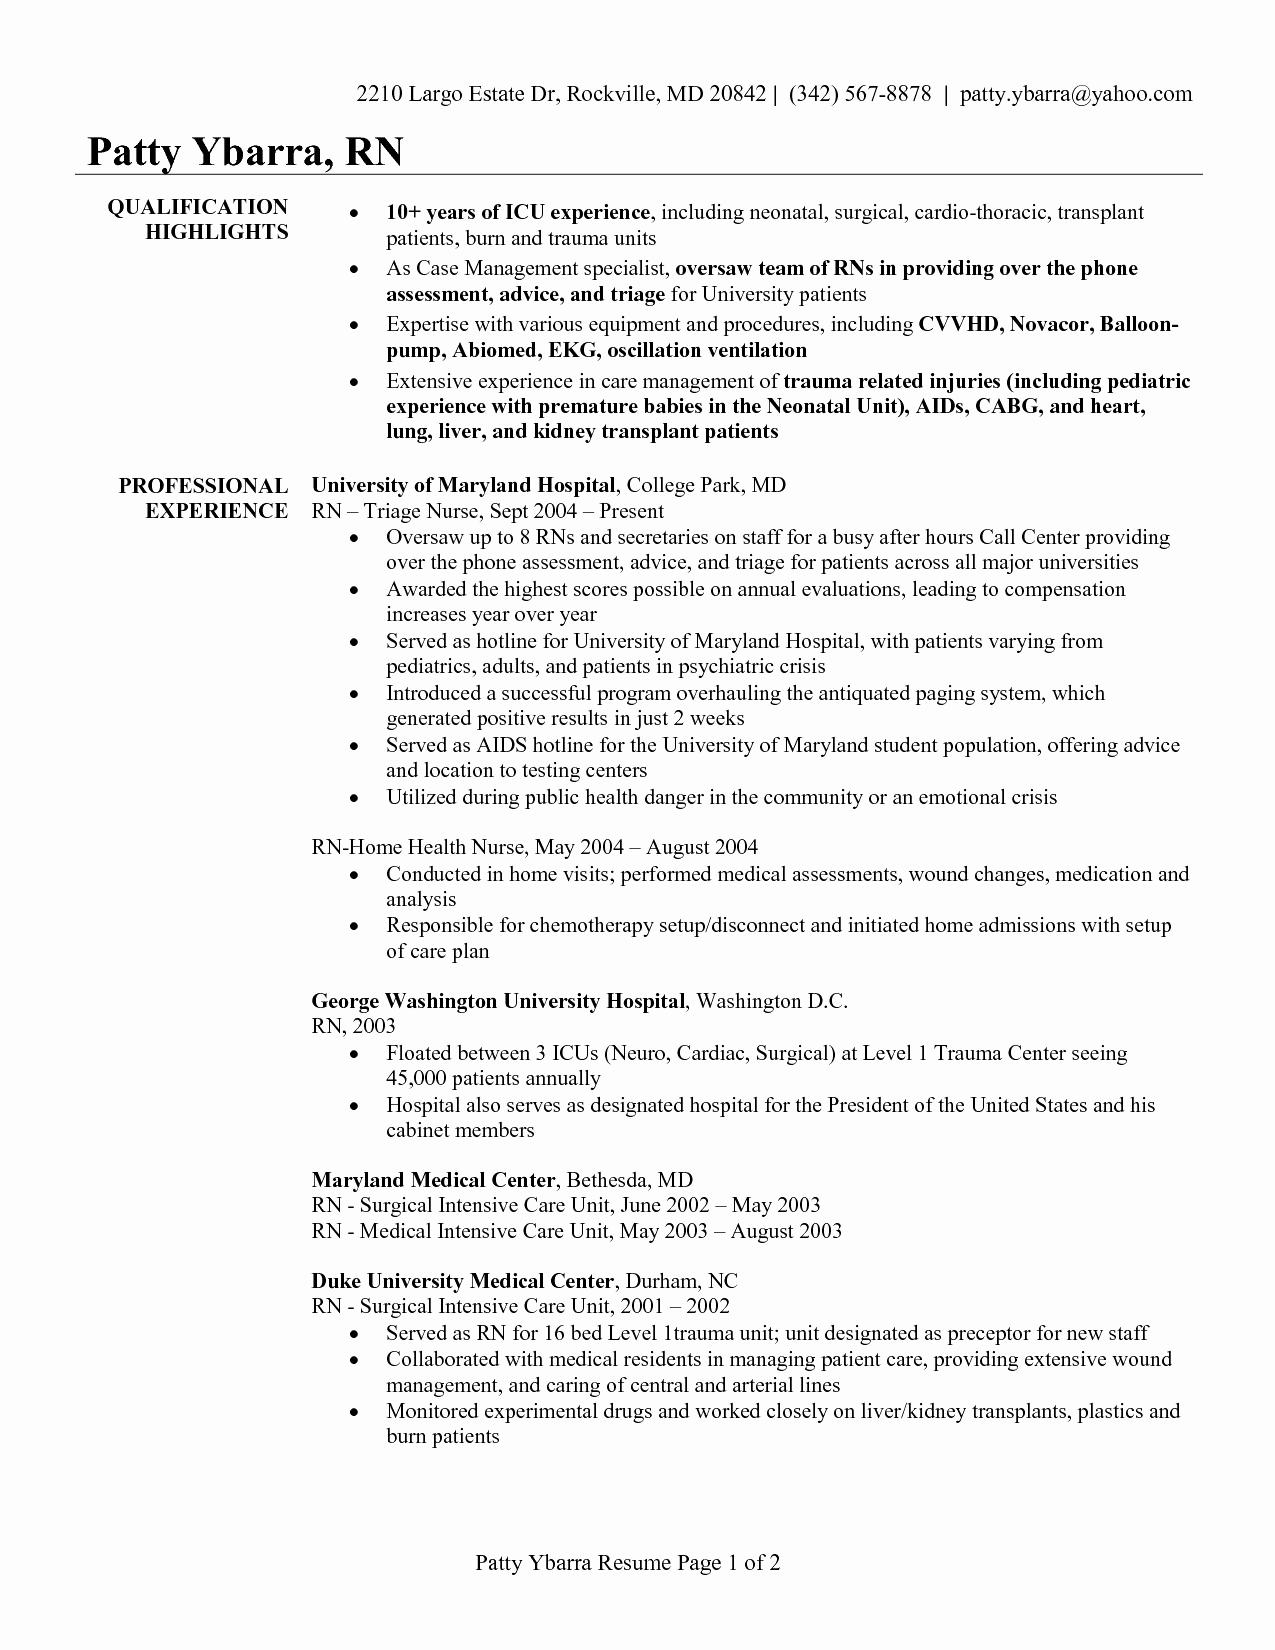 Home Care Nurse Resume Sample - Sample Resume for Newly Registered Nurses Unique Best New Nurse